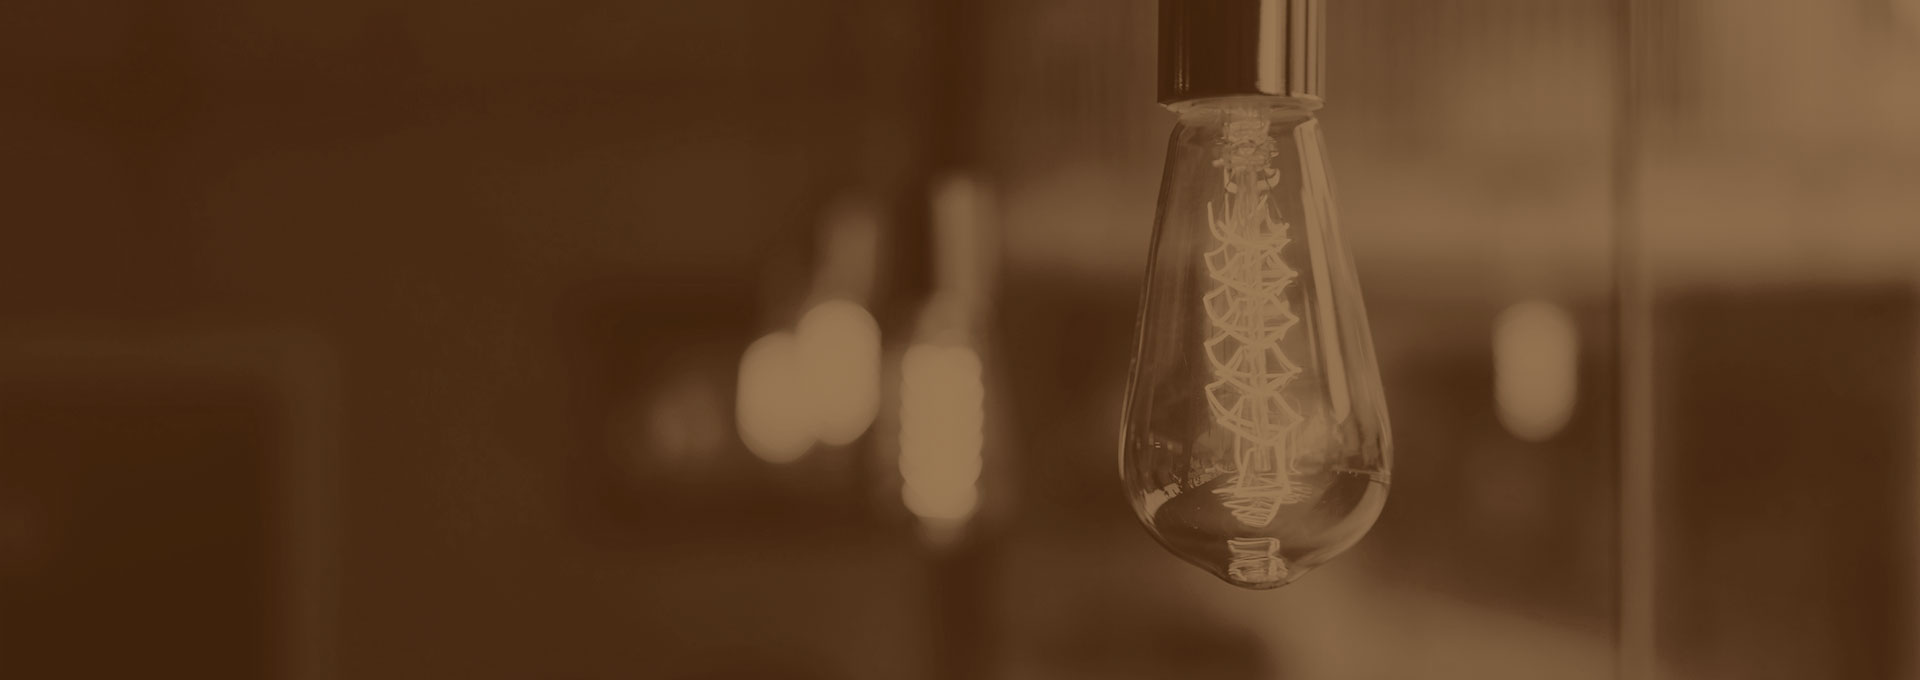 Restaurant Energy Efficiency: Areas to Target and Ways to Improve